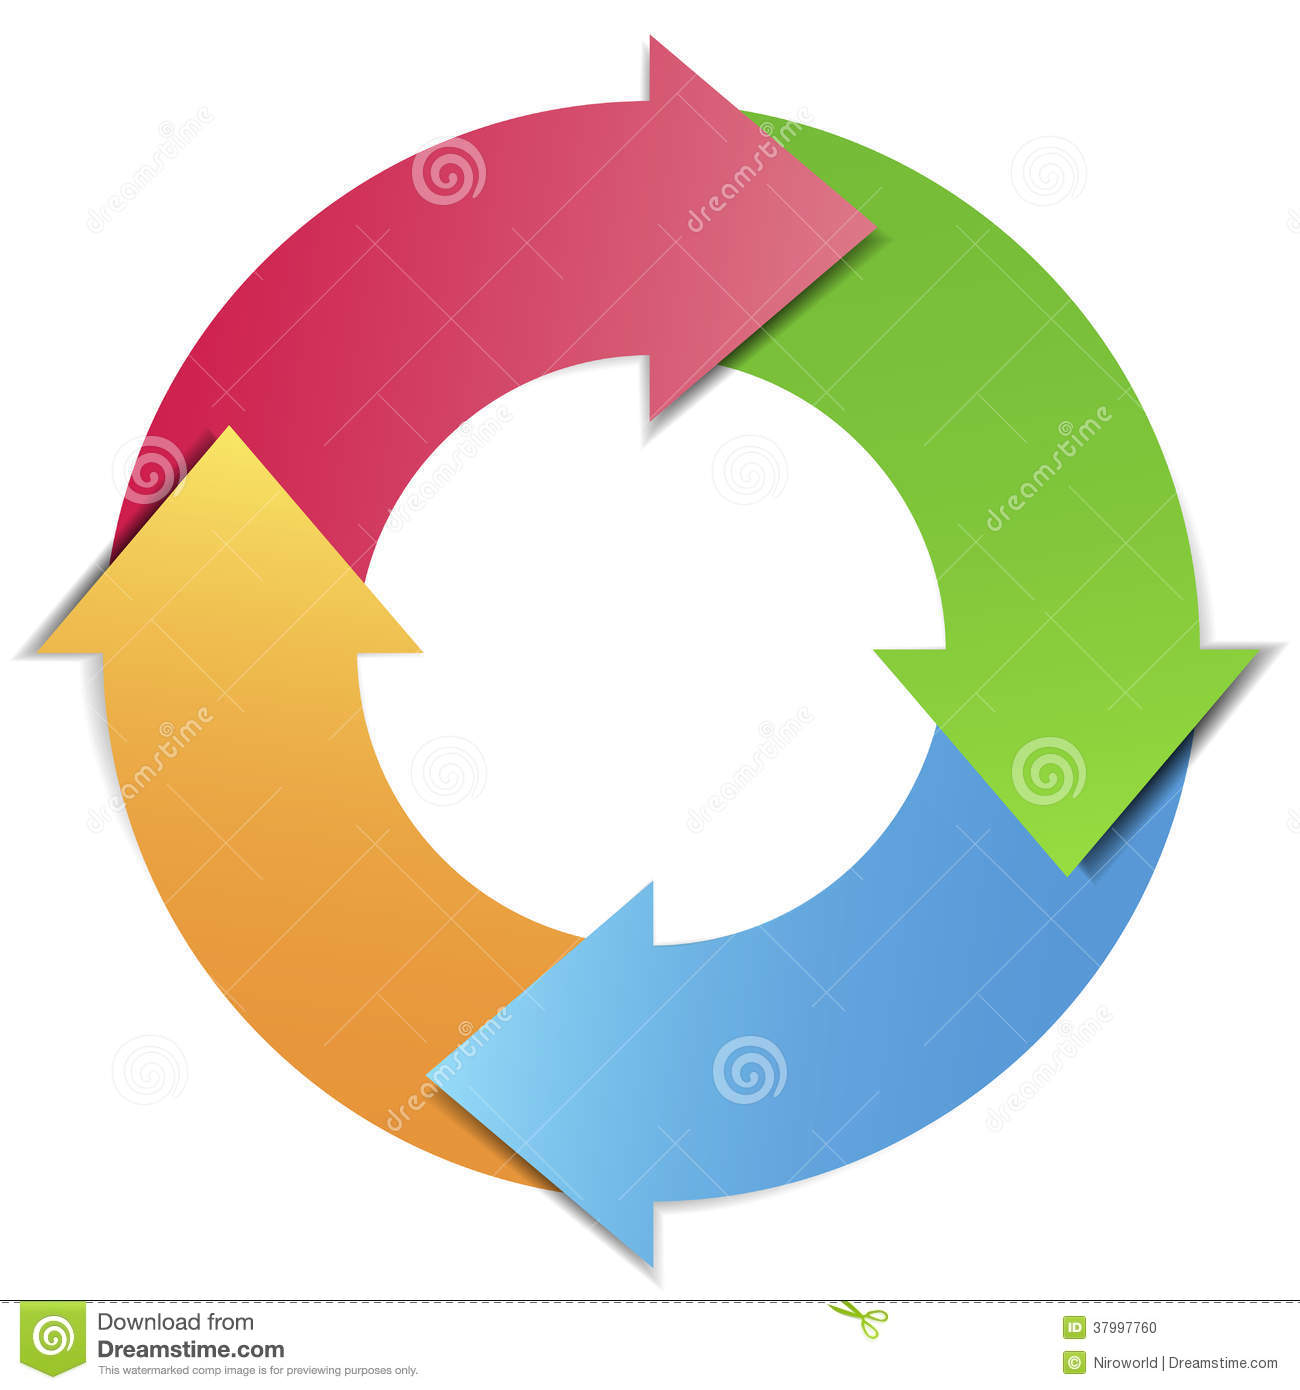 Business Project Cycle Management Diagram Stock Vector